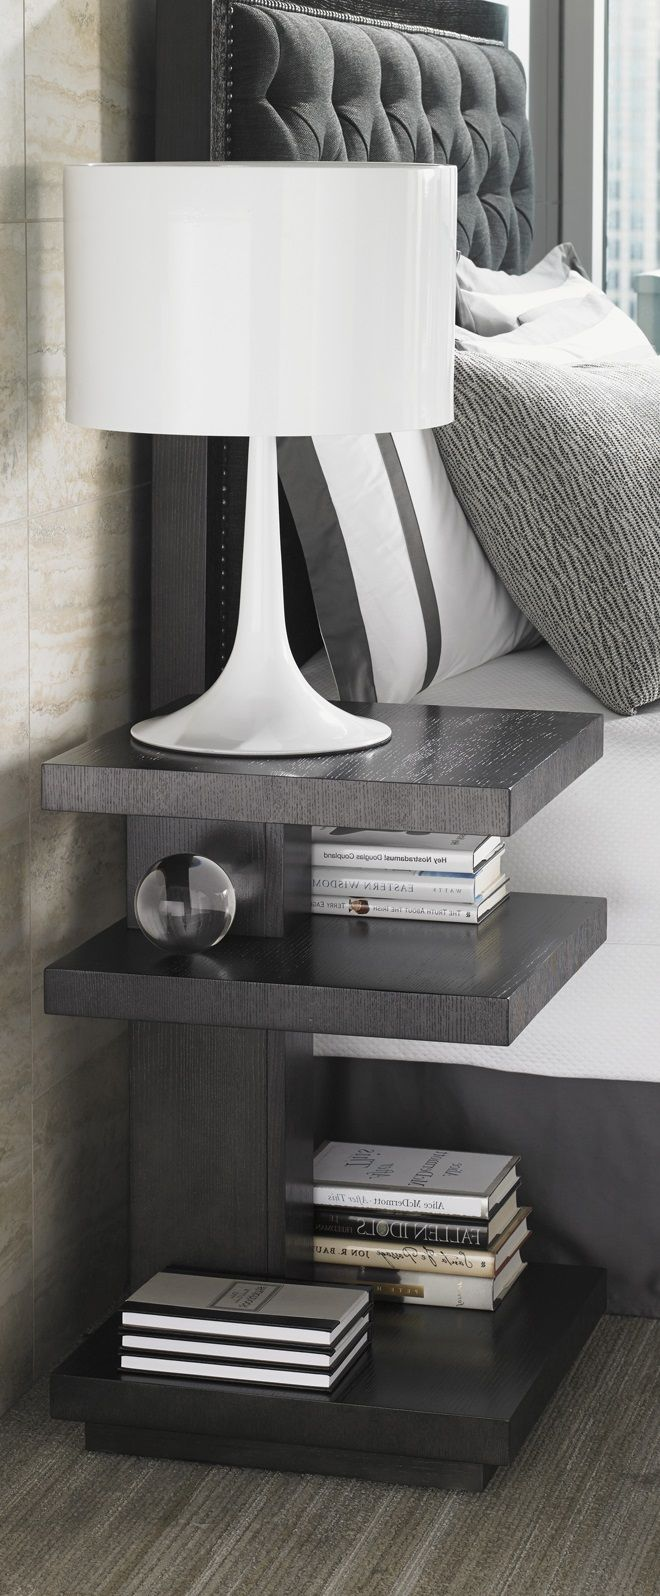 Modern Bedroom Ideas Small Bedside Tables Contemporary Shelves End